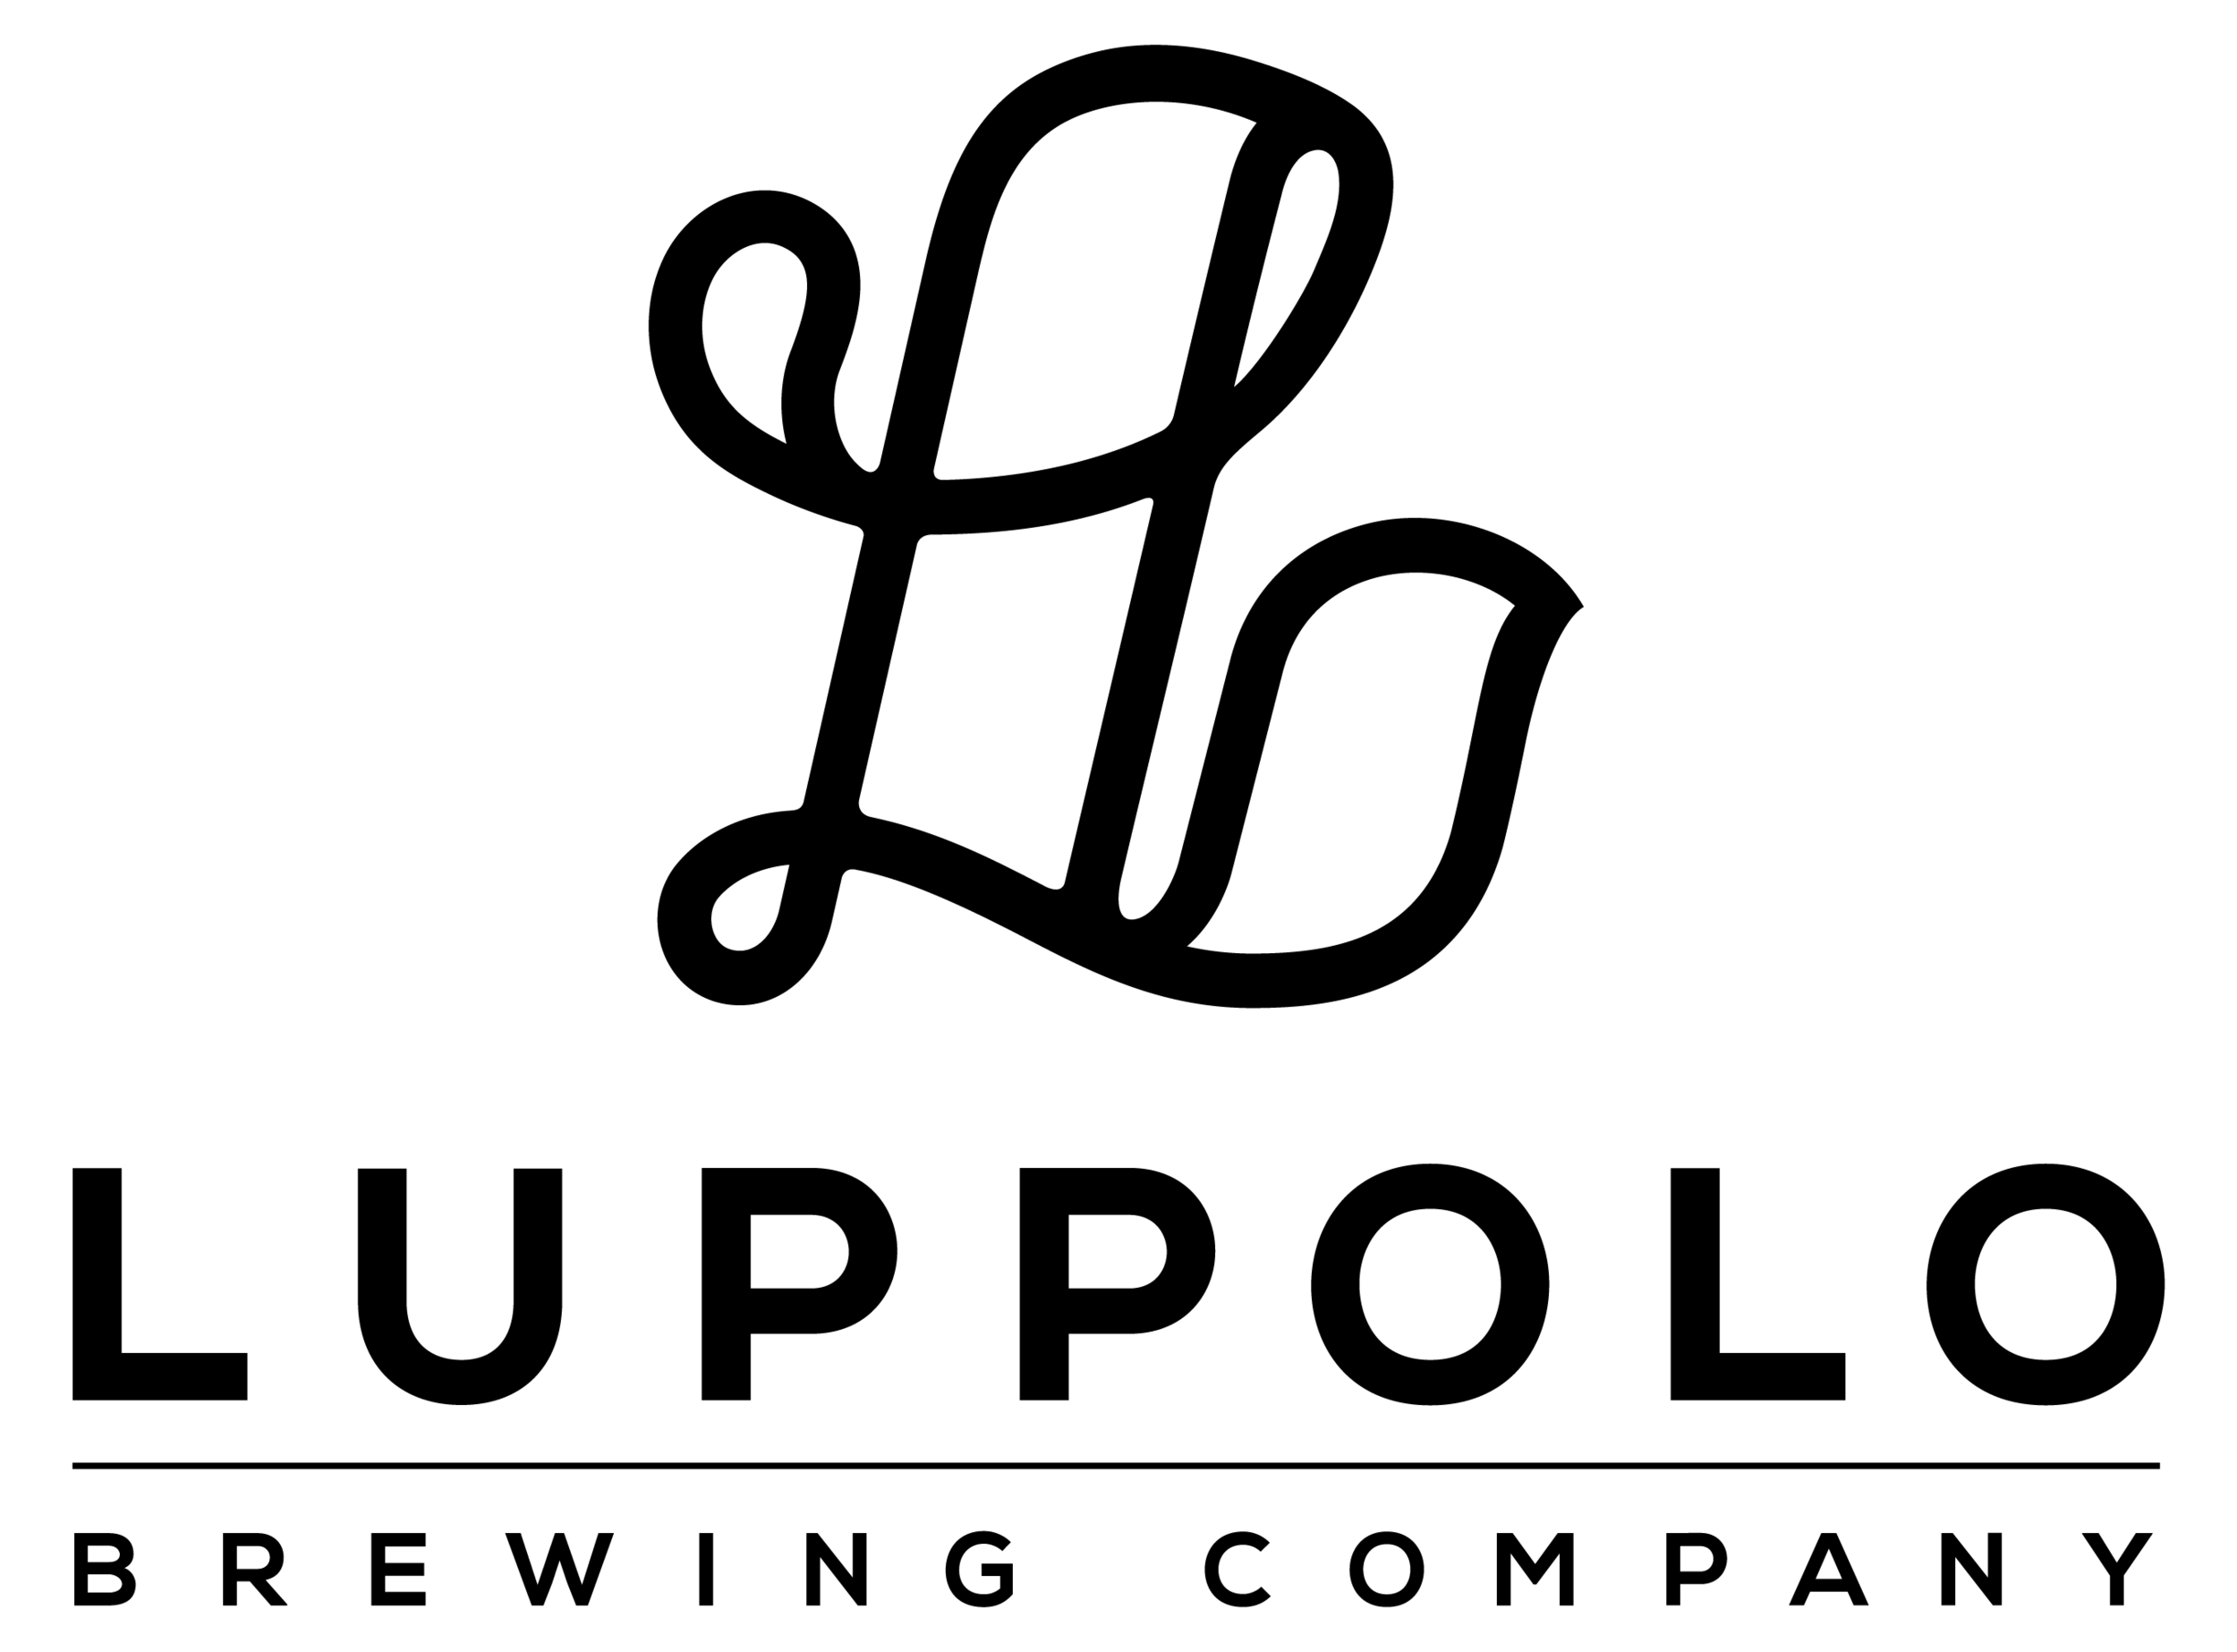 Luppolo_Wordmark_A_RGB.png